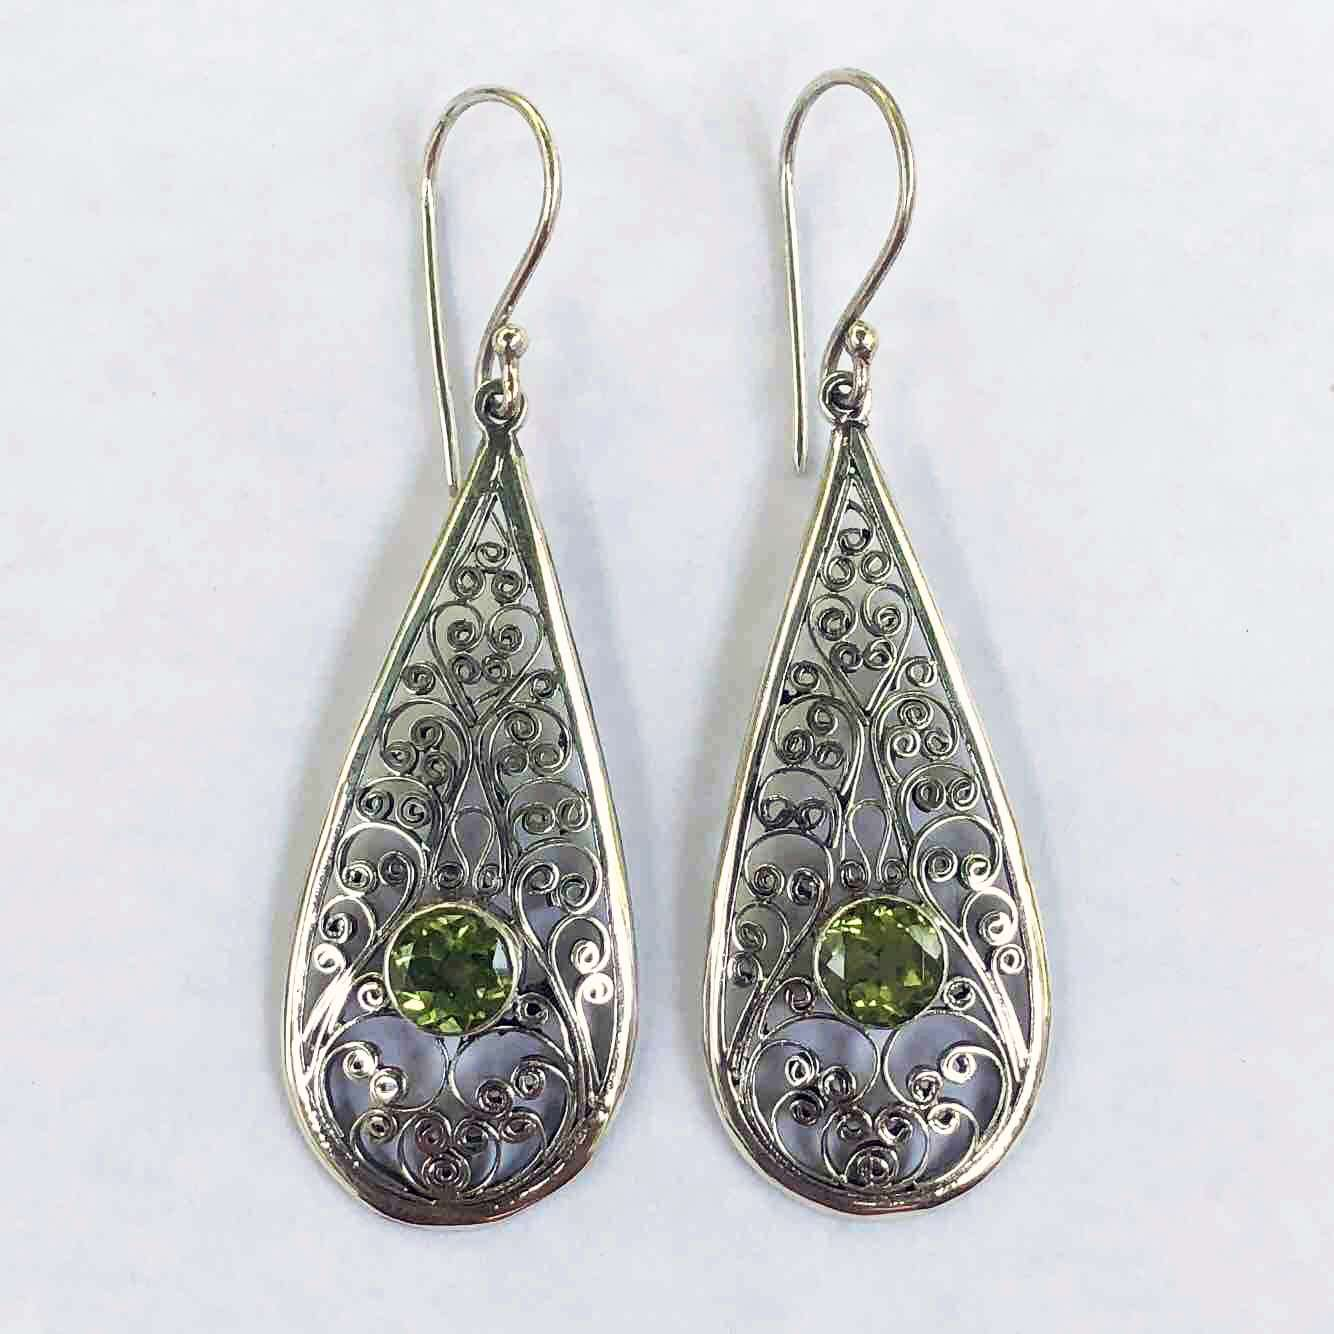 (UNIQUE 925 BALI SILVER FILIGREE EARRINGS WITH PERIDOT)